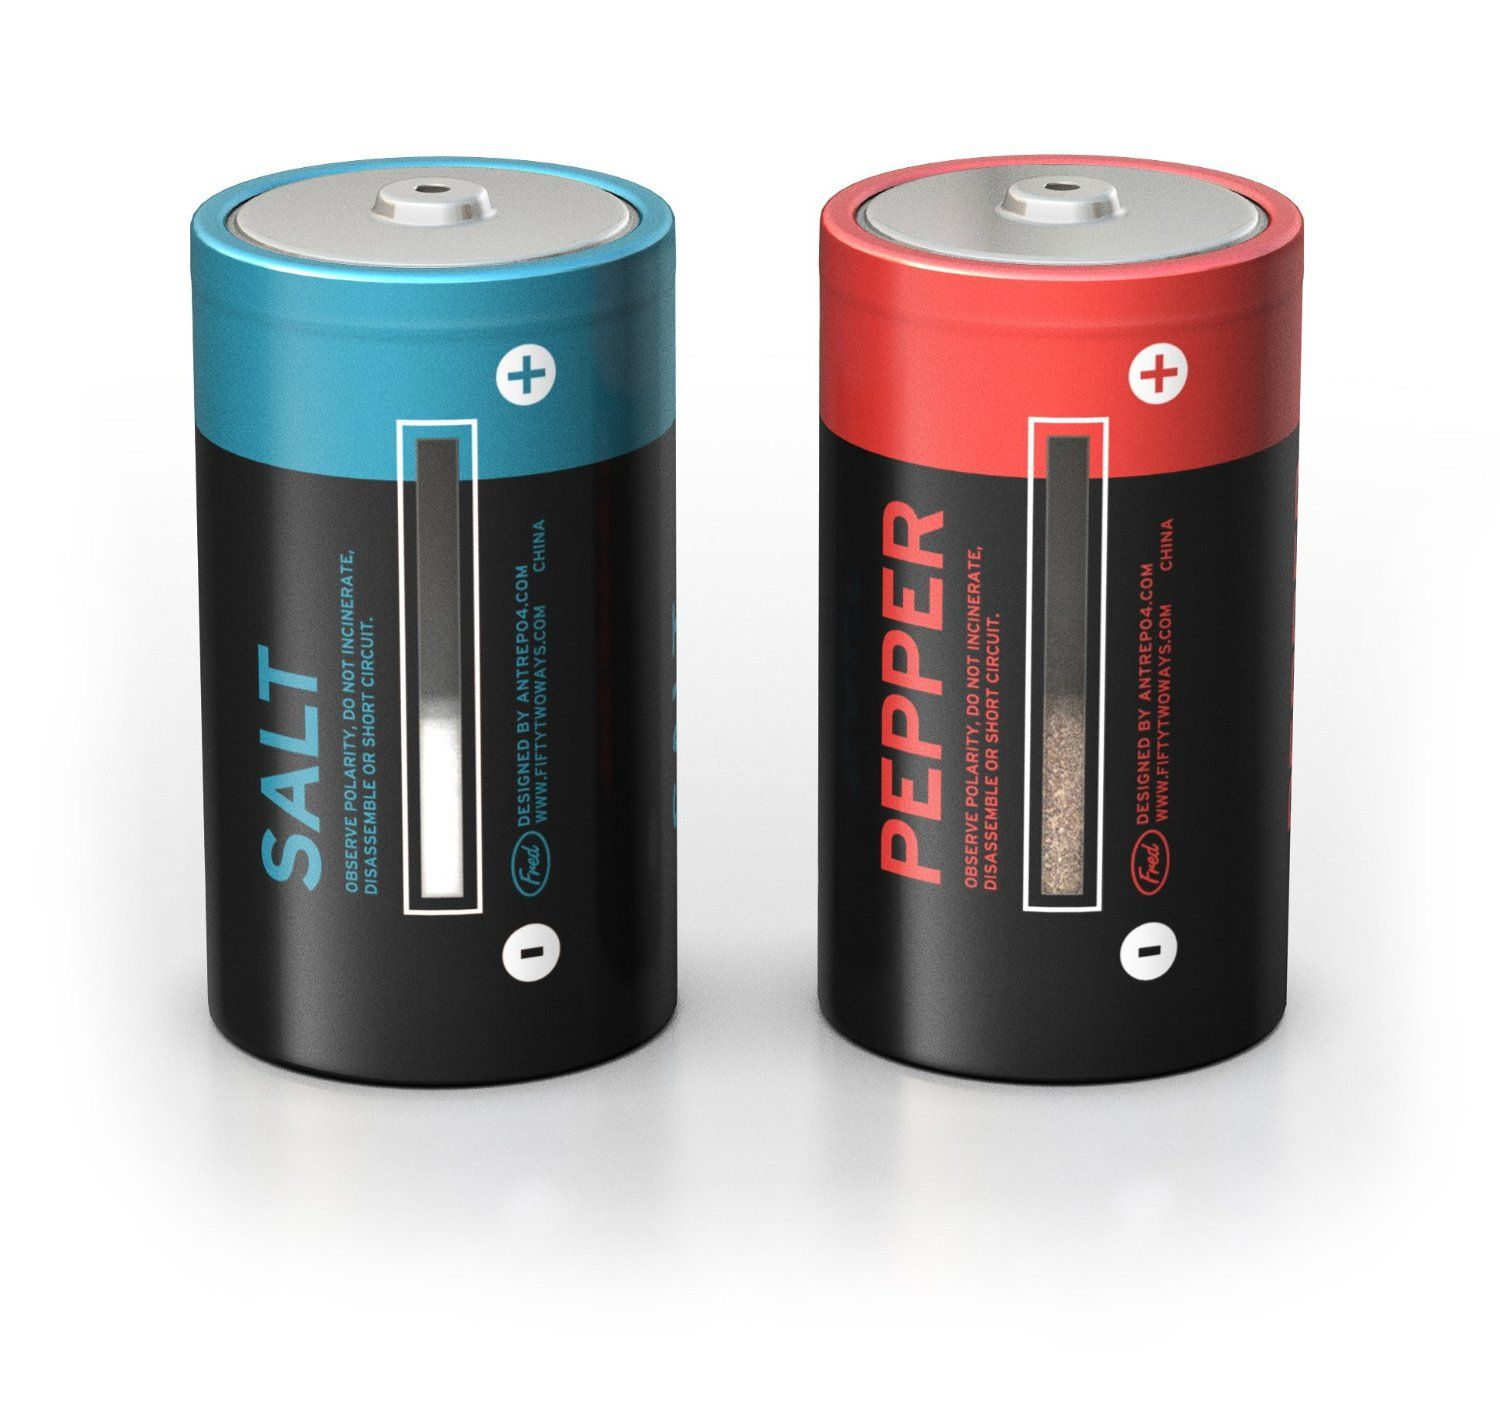 Salt and Pepper shakers made to look like batteries See through on